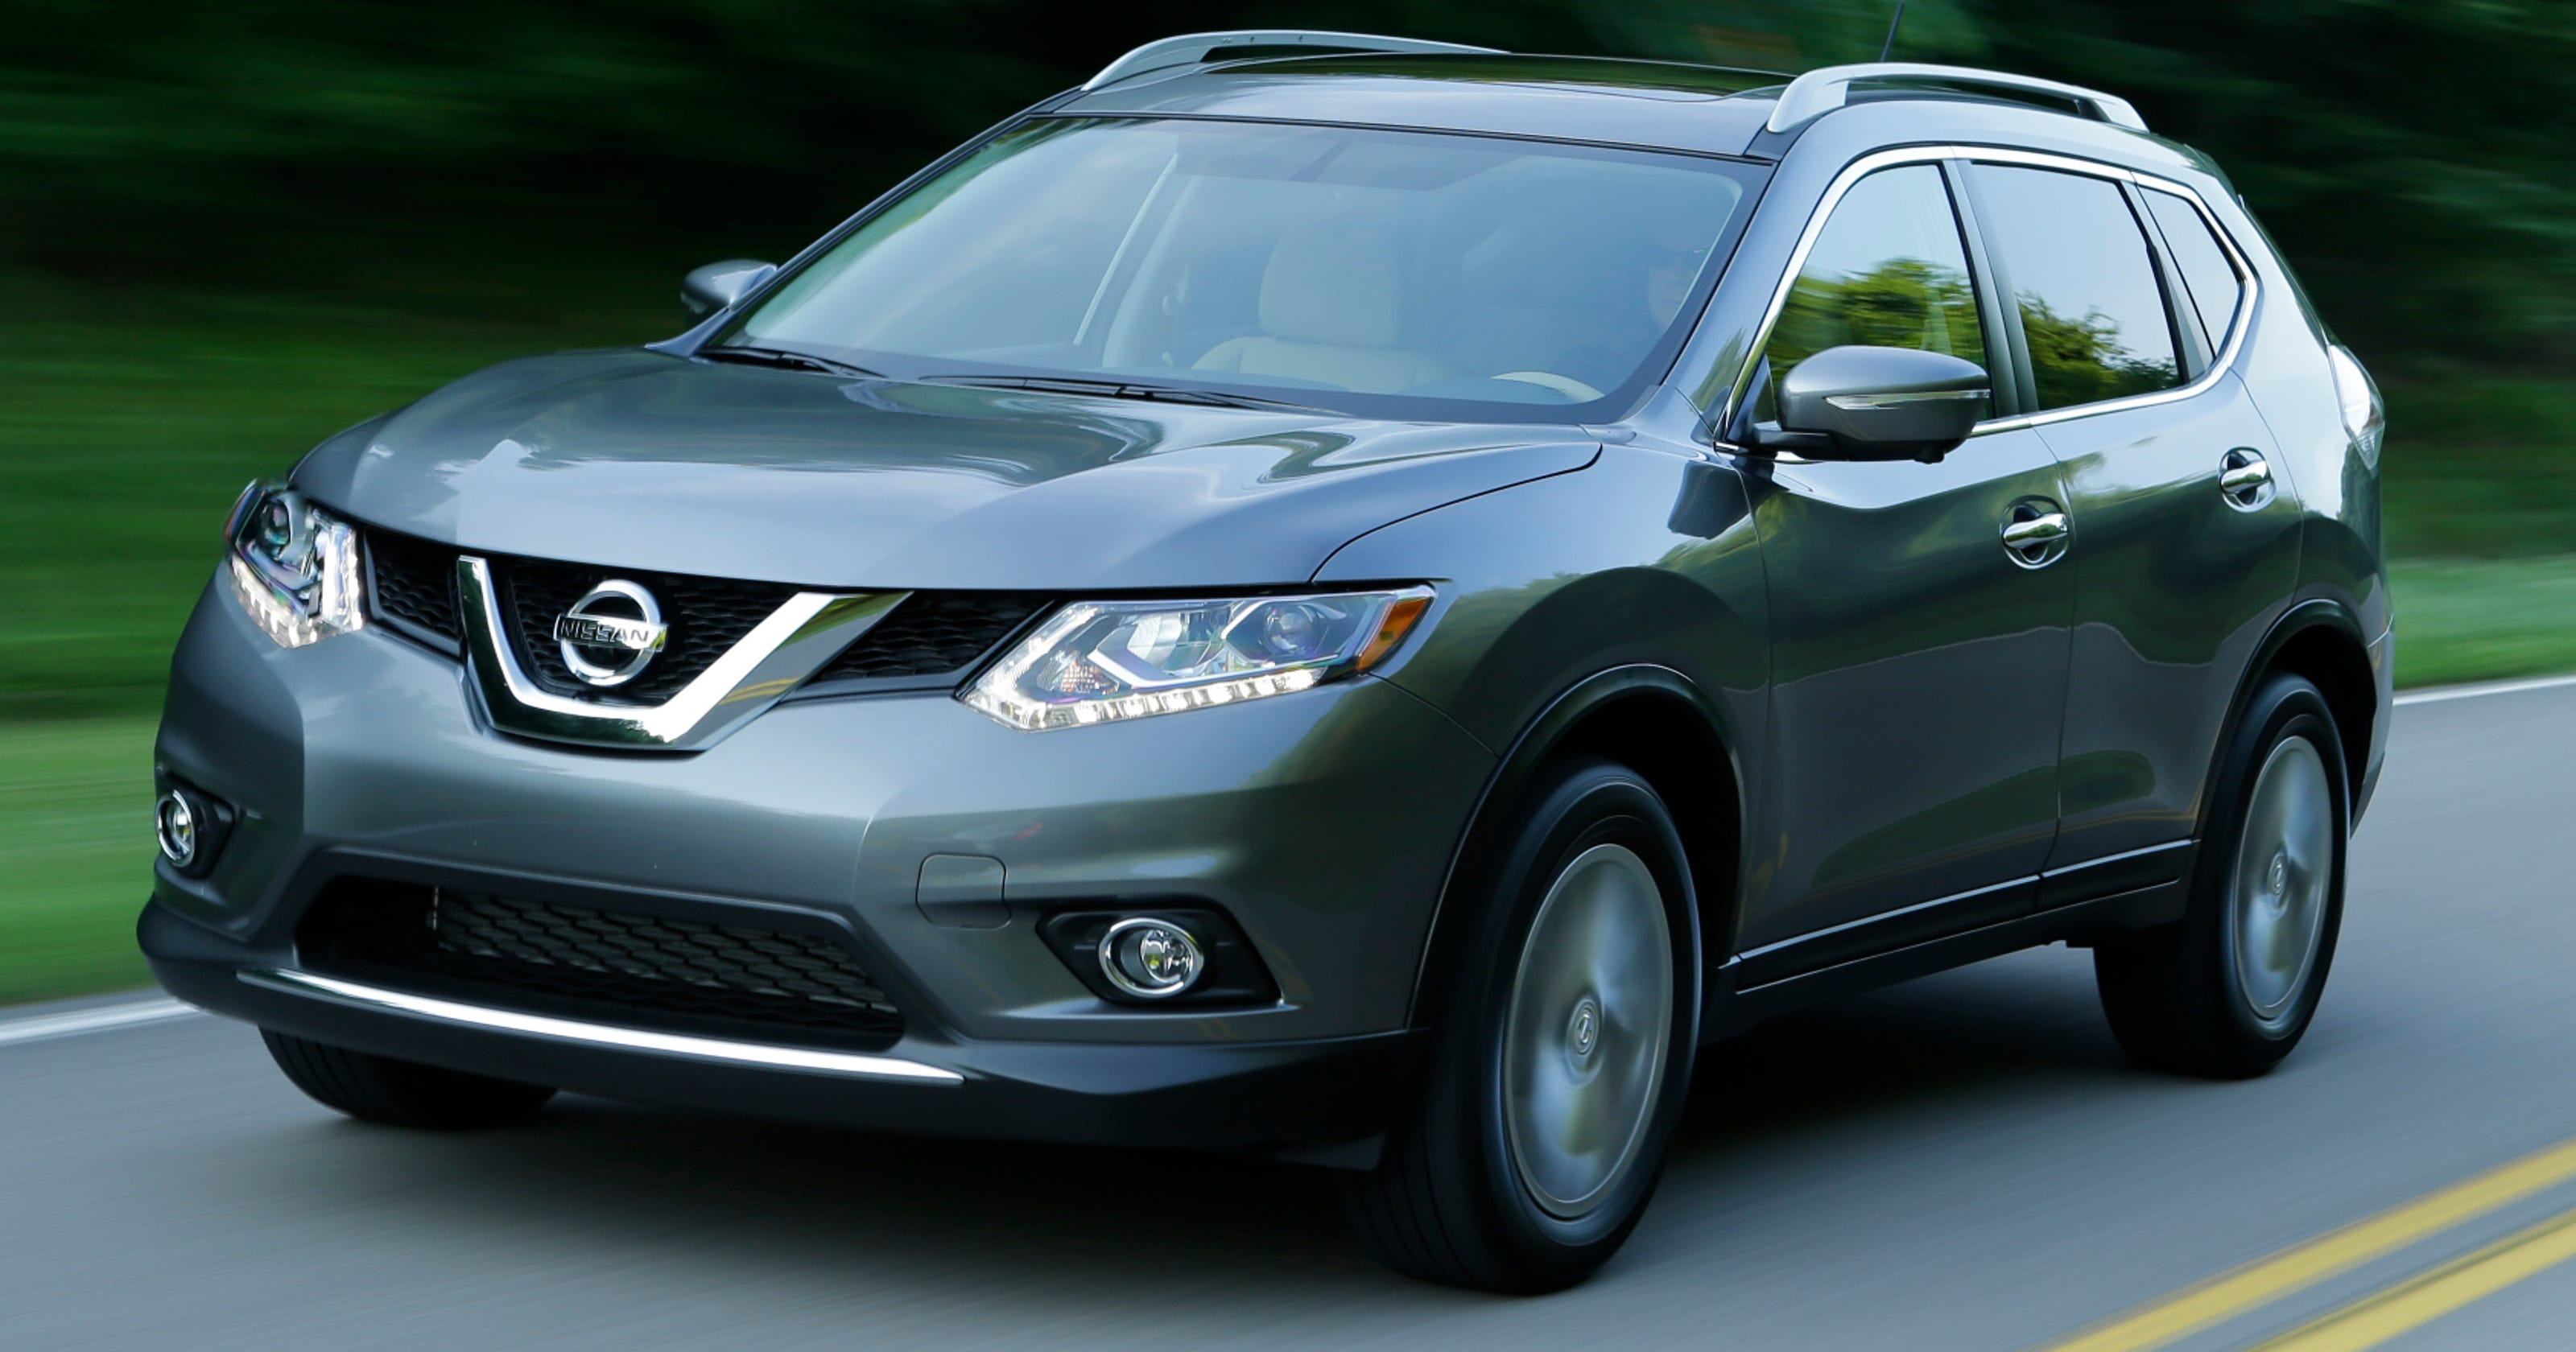 Nissan Models 2015 >> Nissan Rogue Prices Unchanged On 2015 Models